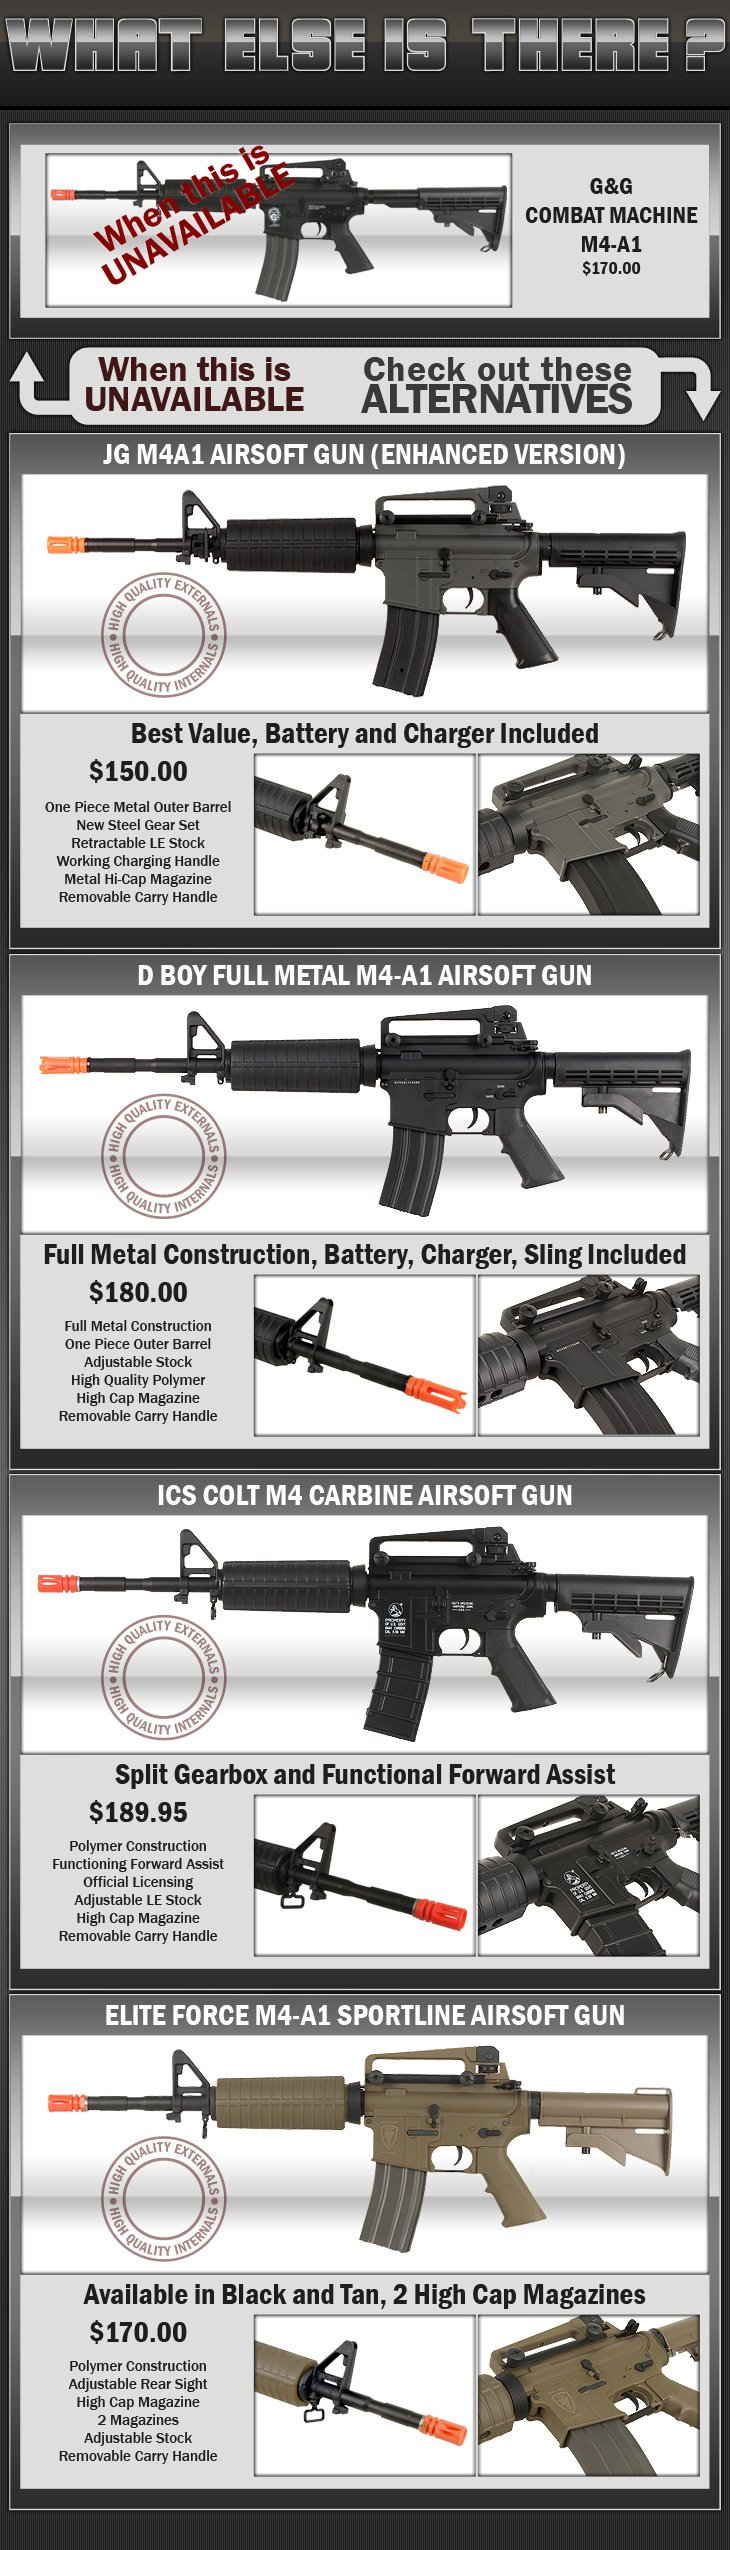 Combat Machine M16 Carbine Alternative Options